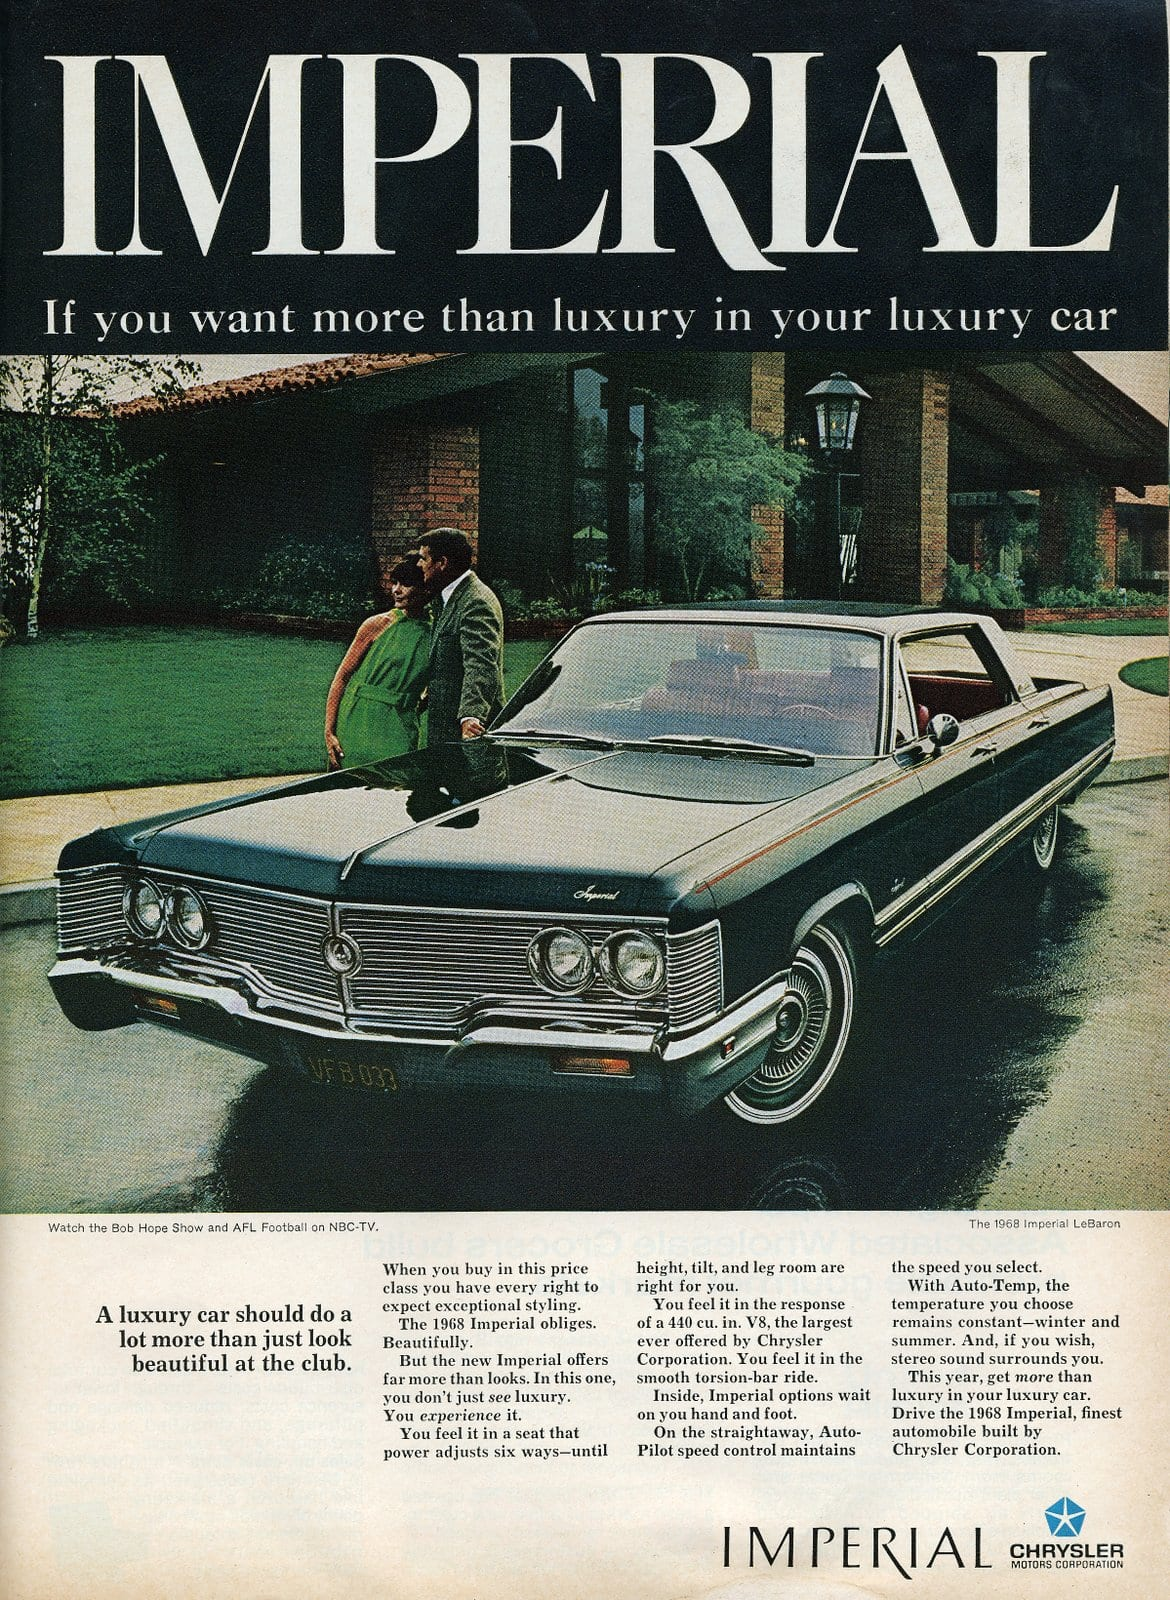 1968 Chrysler Imperial - vintage classic car ad (6)